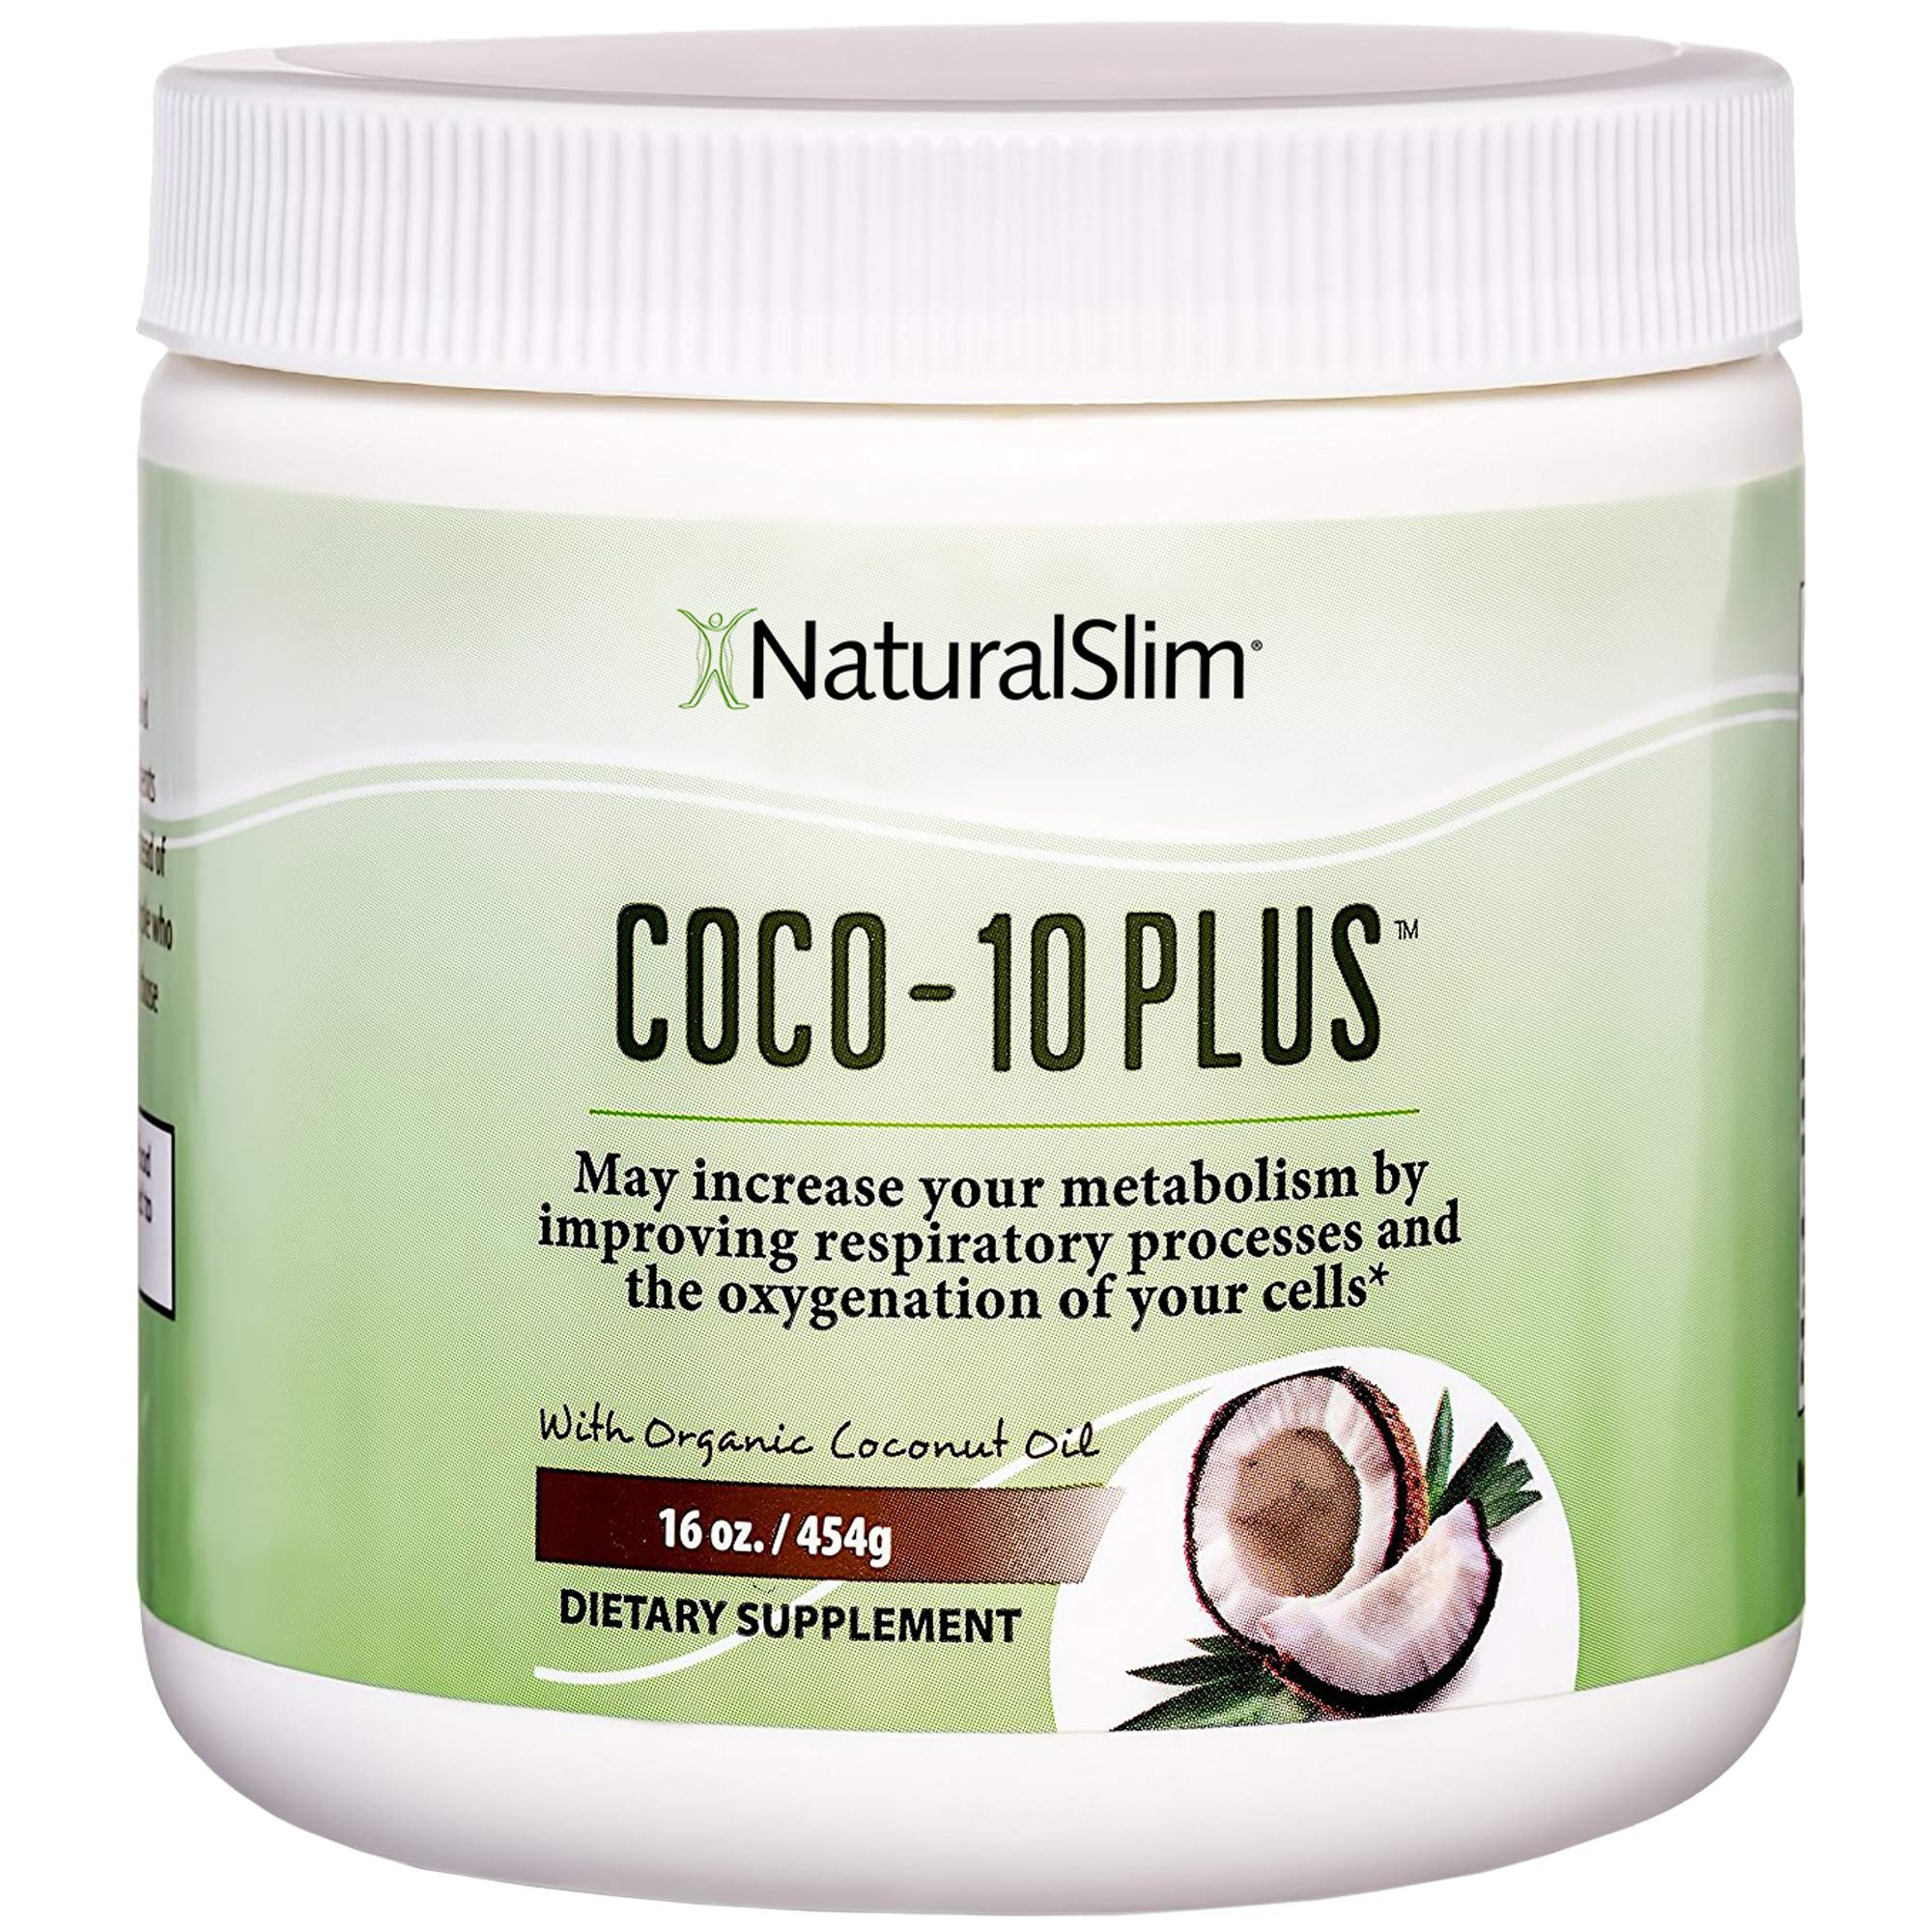 NaturalSlim''Super'' Organic Coconut Oil with CoQ10, Formulated by Obesity and Metabolism Specialist to Improve Energy Levels and Assist with Weight Loss - Natural Fat Burner to Any Diet Attempt 16 Oz by RelaxSlim